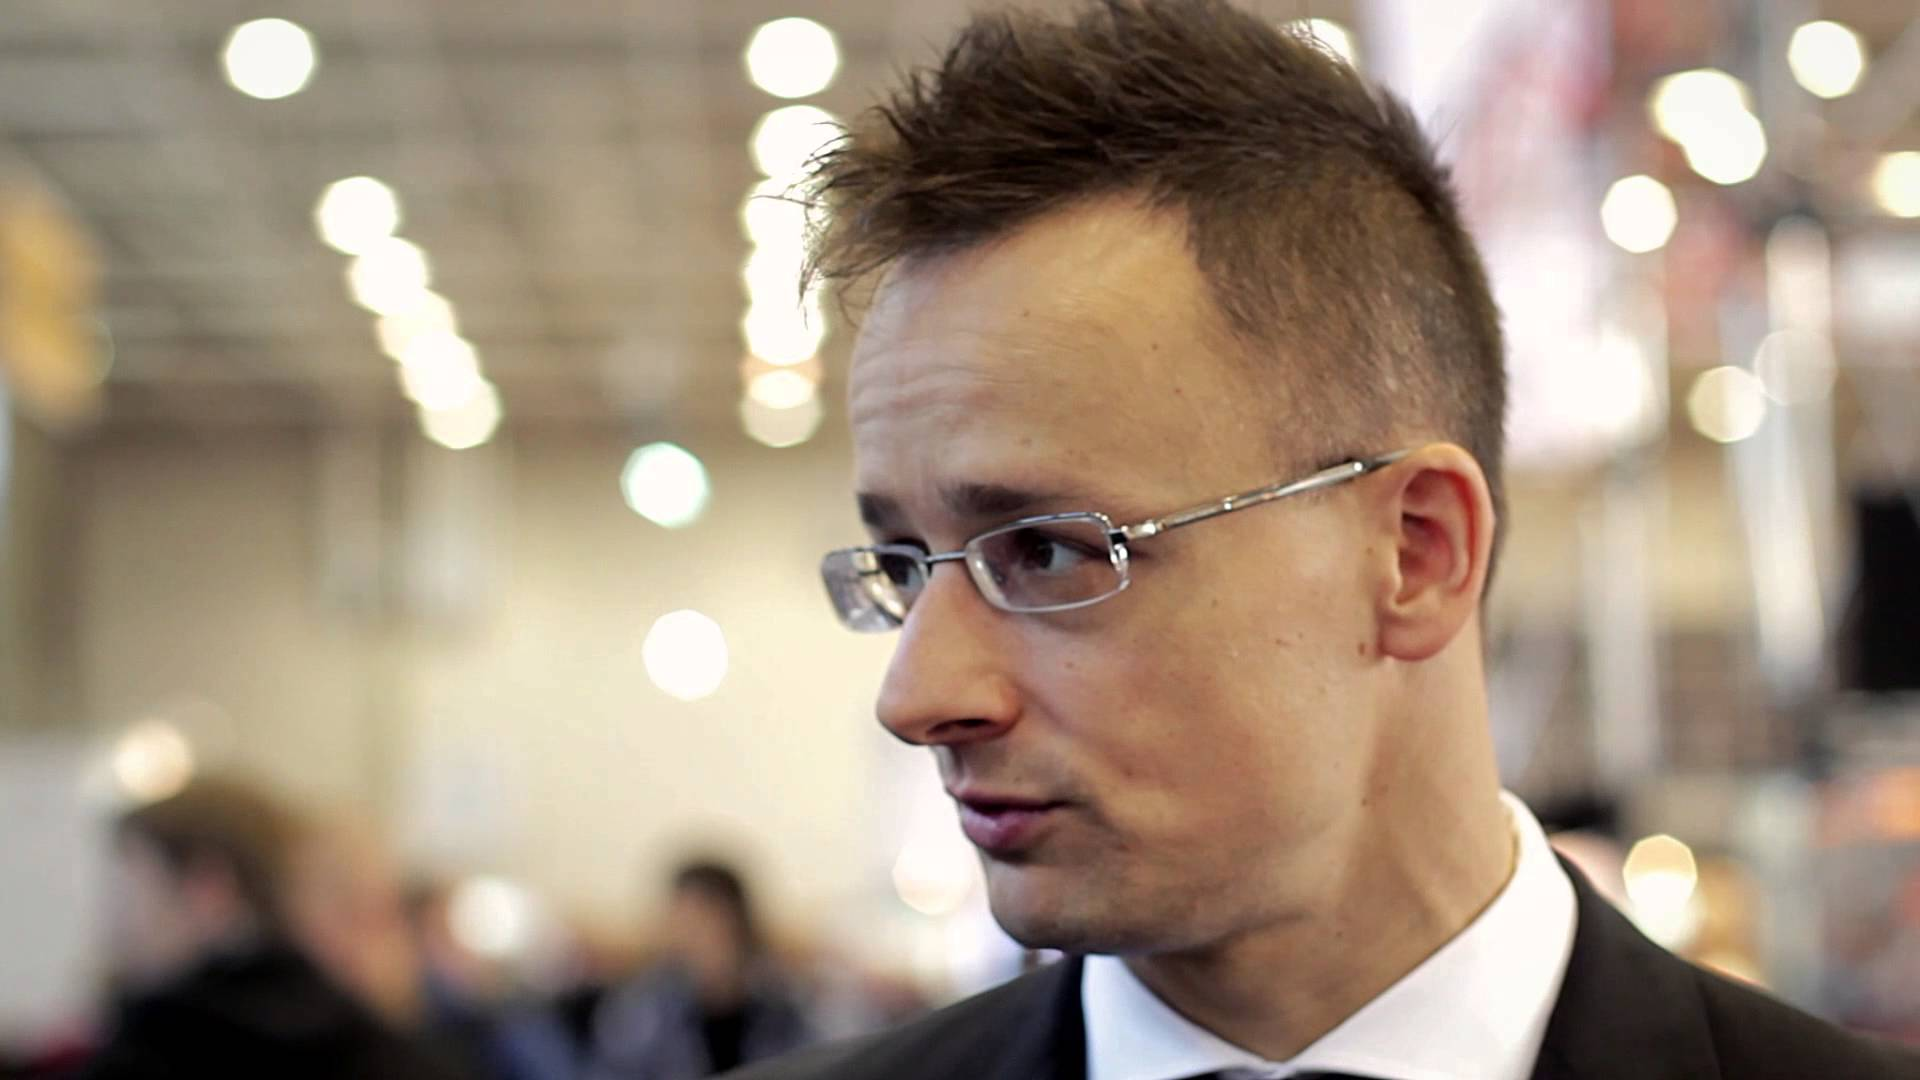 Hungary insist on border fence with Serbia